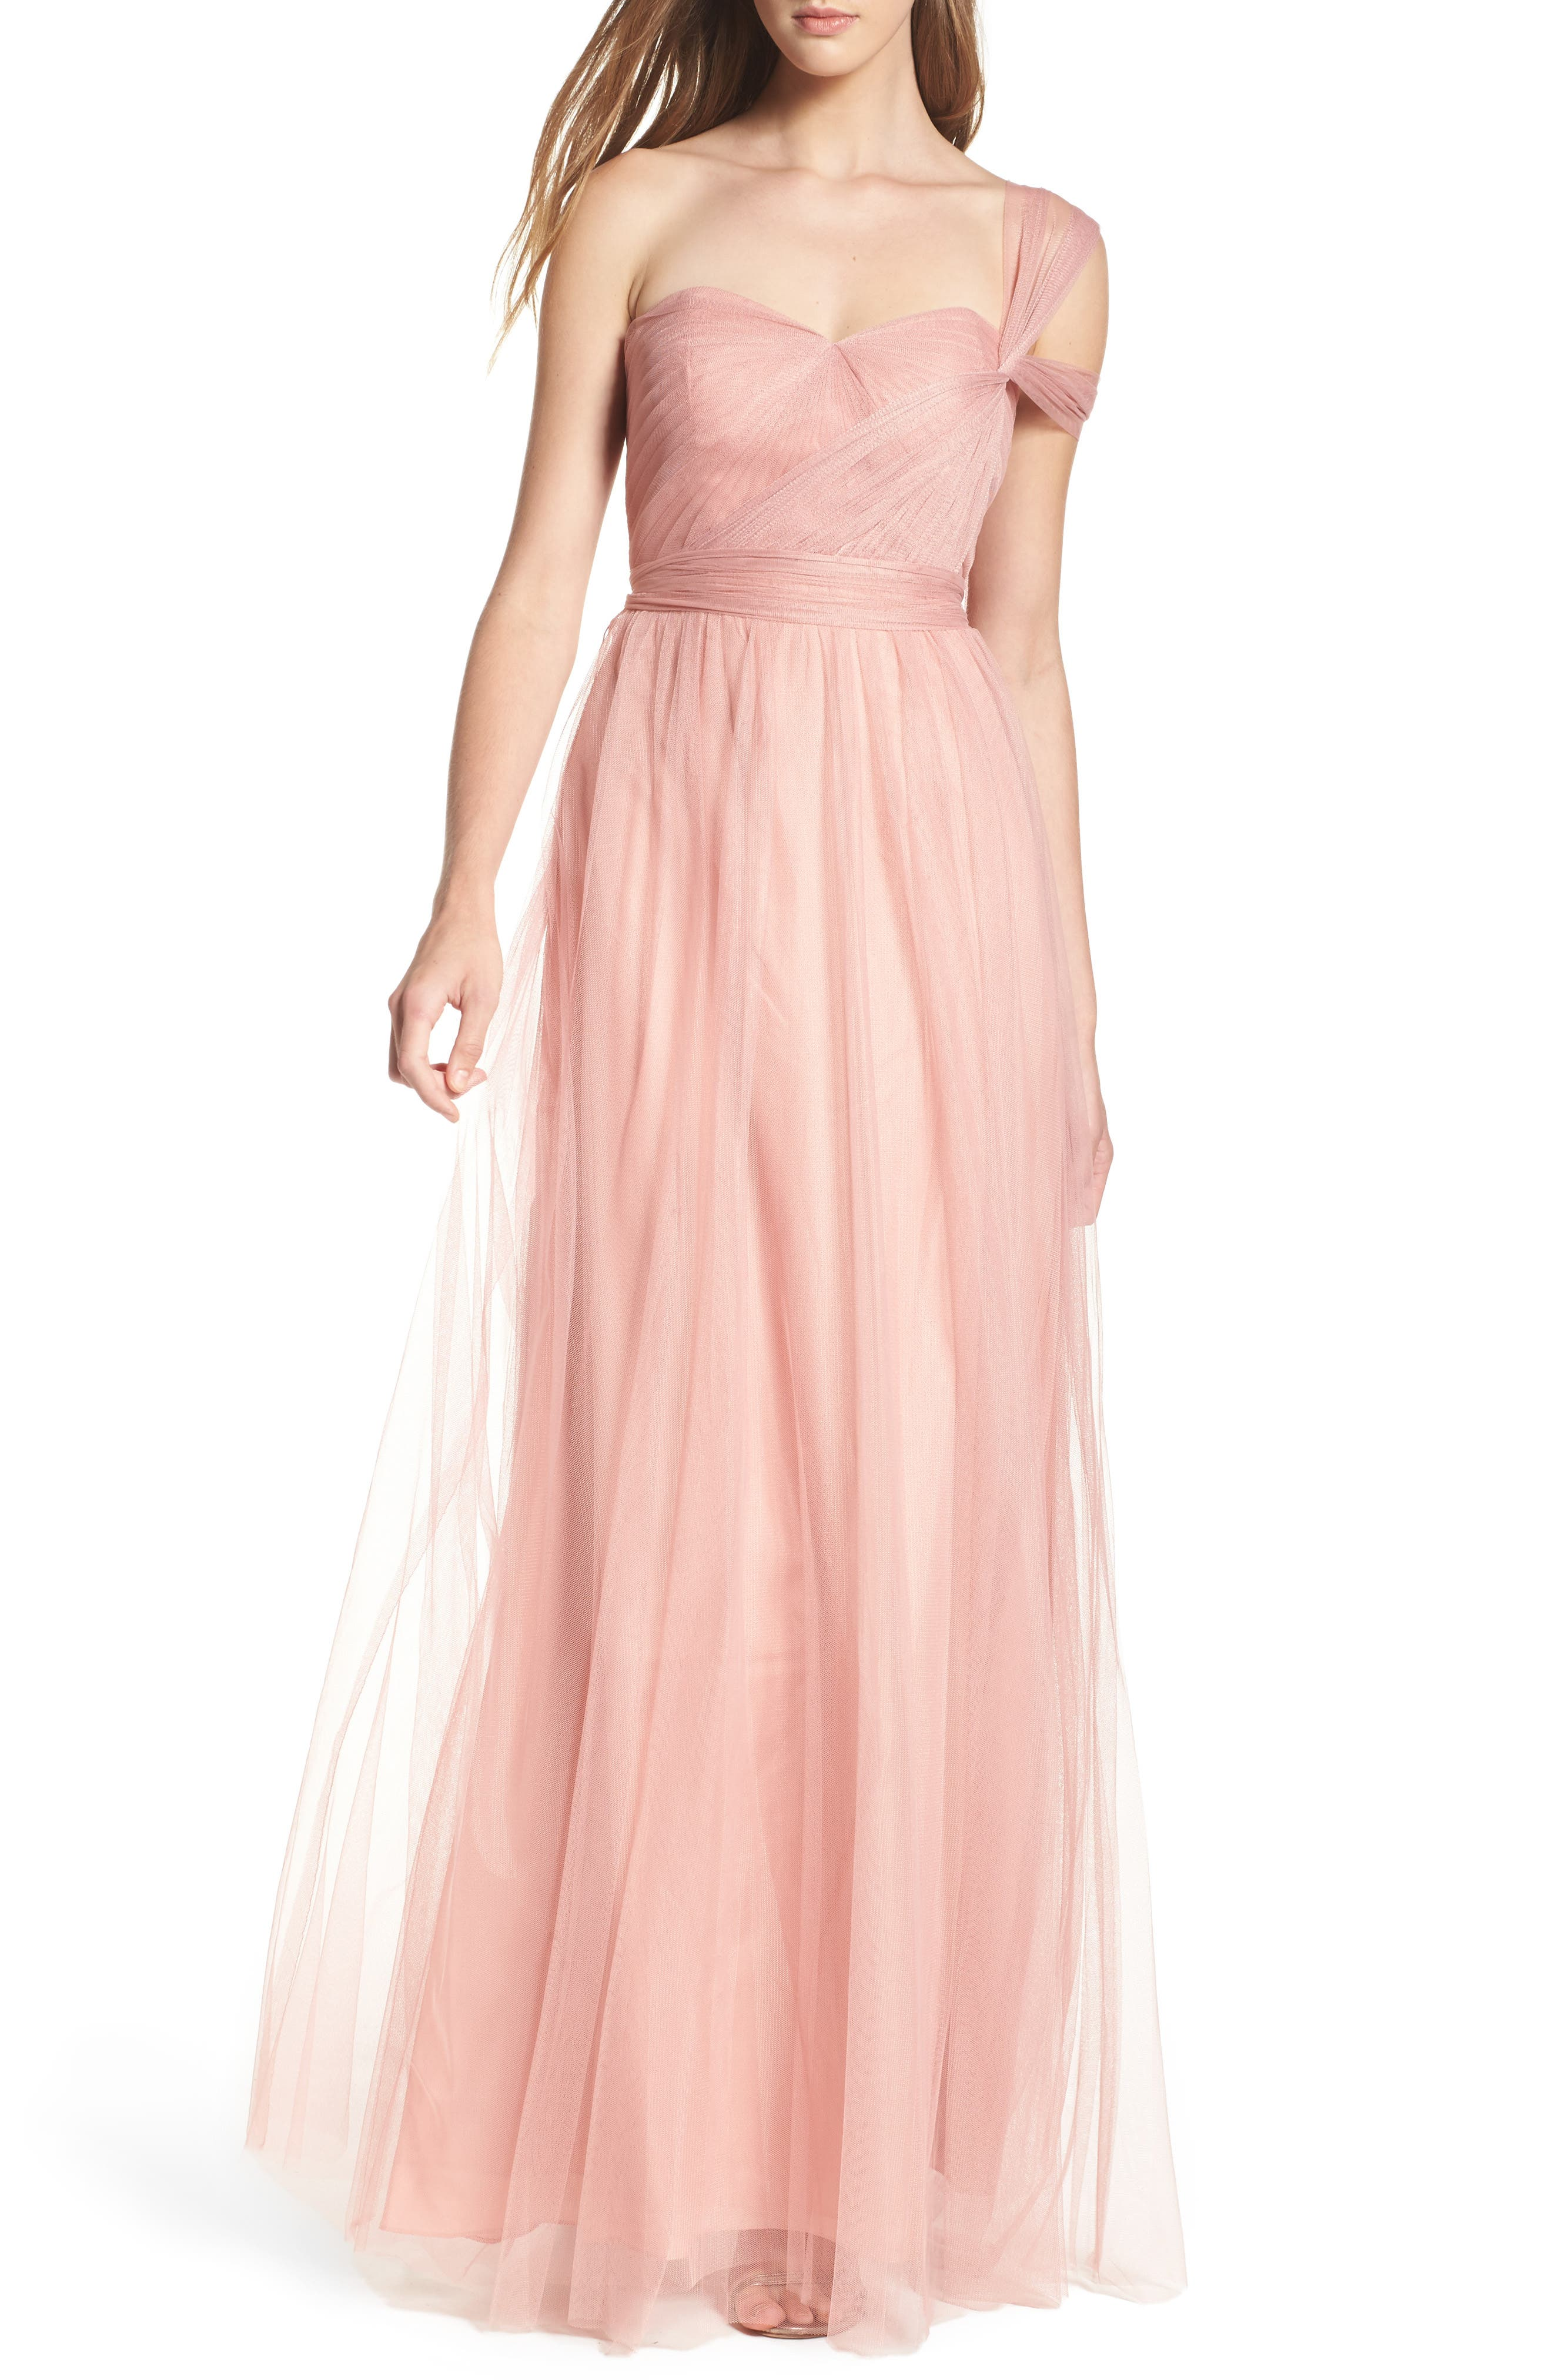 Annabelle Convertible Tulle Column Dress,                             Alternate thumbnail 42, color,